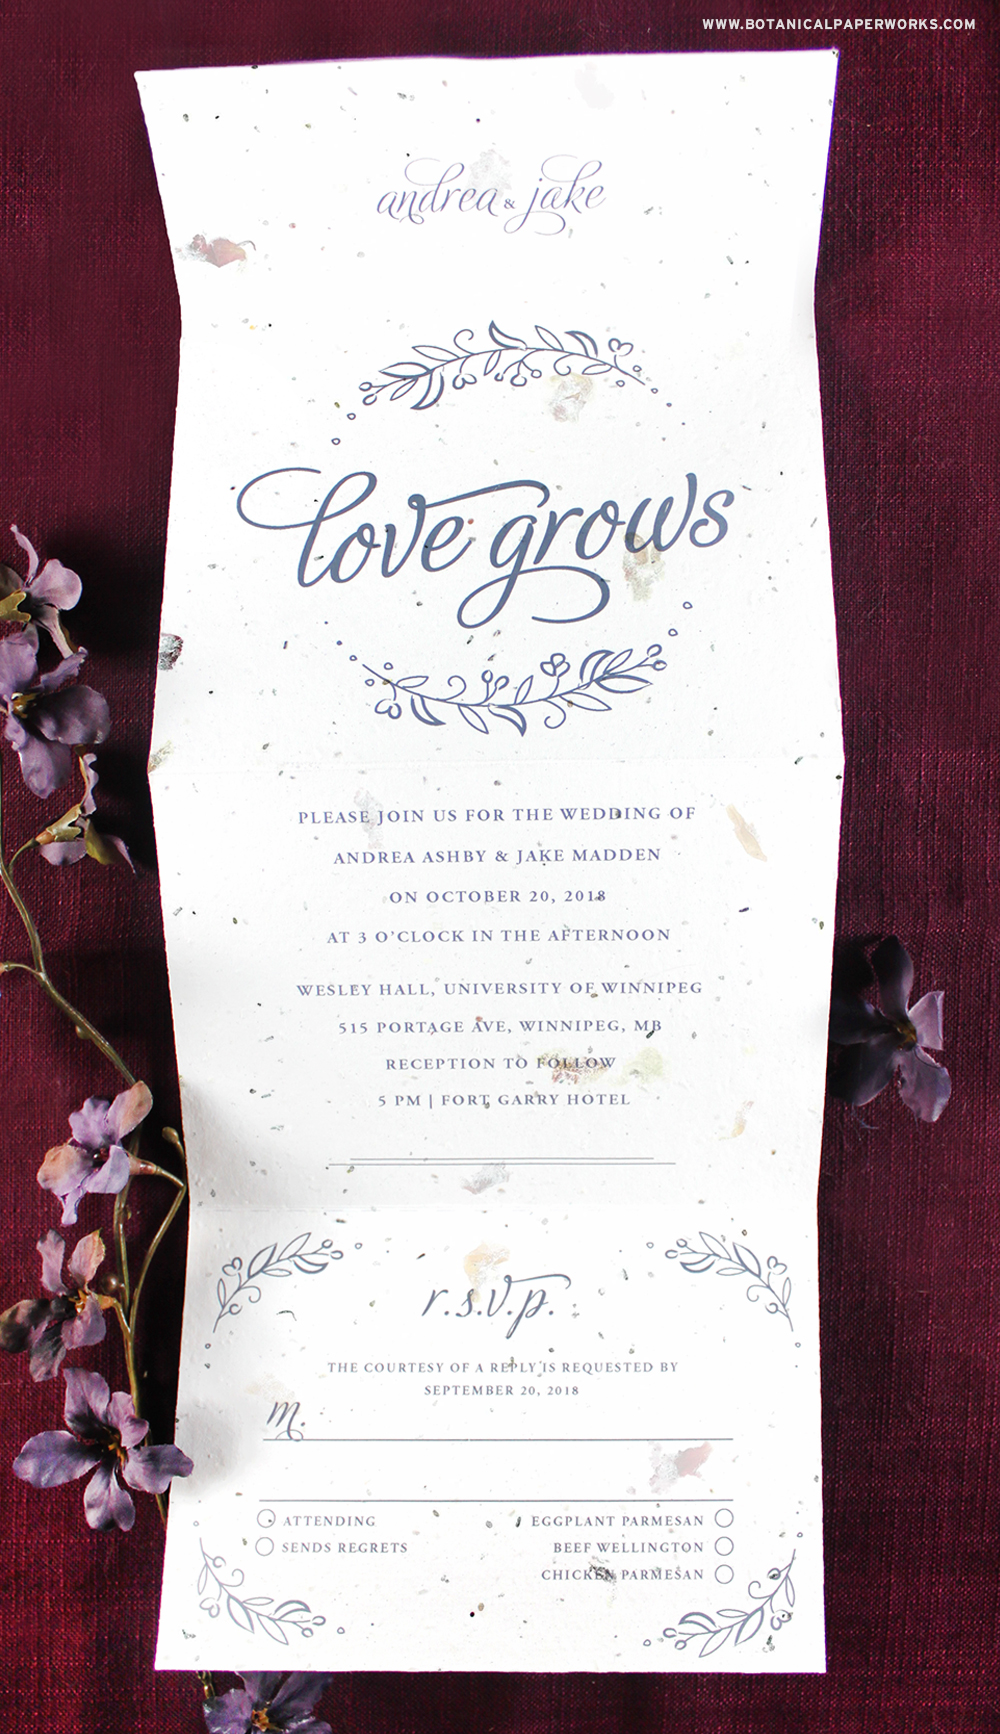 Learn more about the NEW Seeds Of Love Seal and Send Wedding Invitations that reduce waste and are super easy to send!